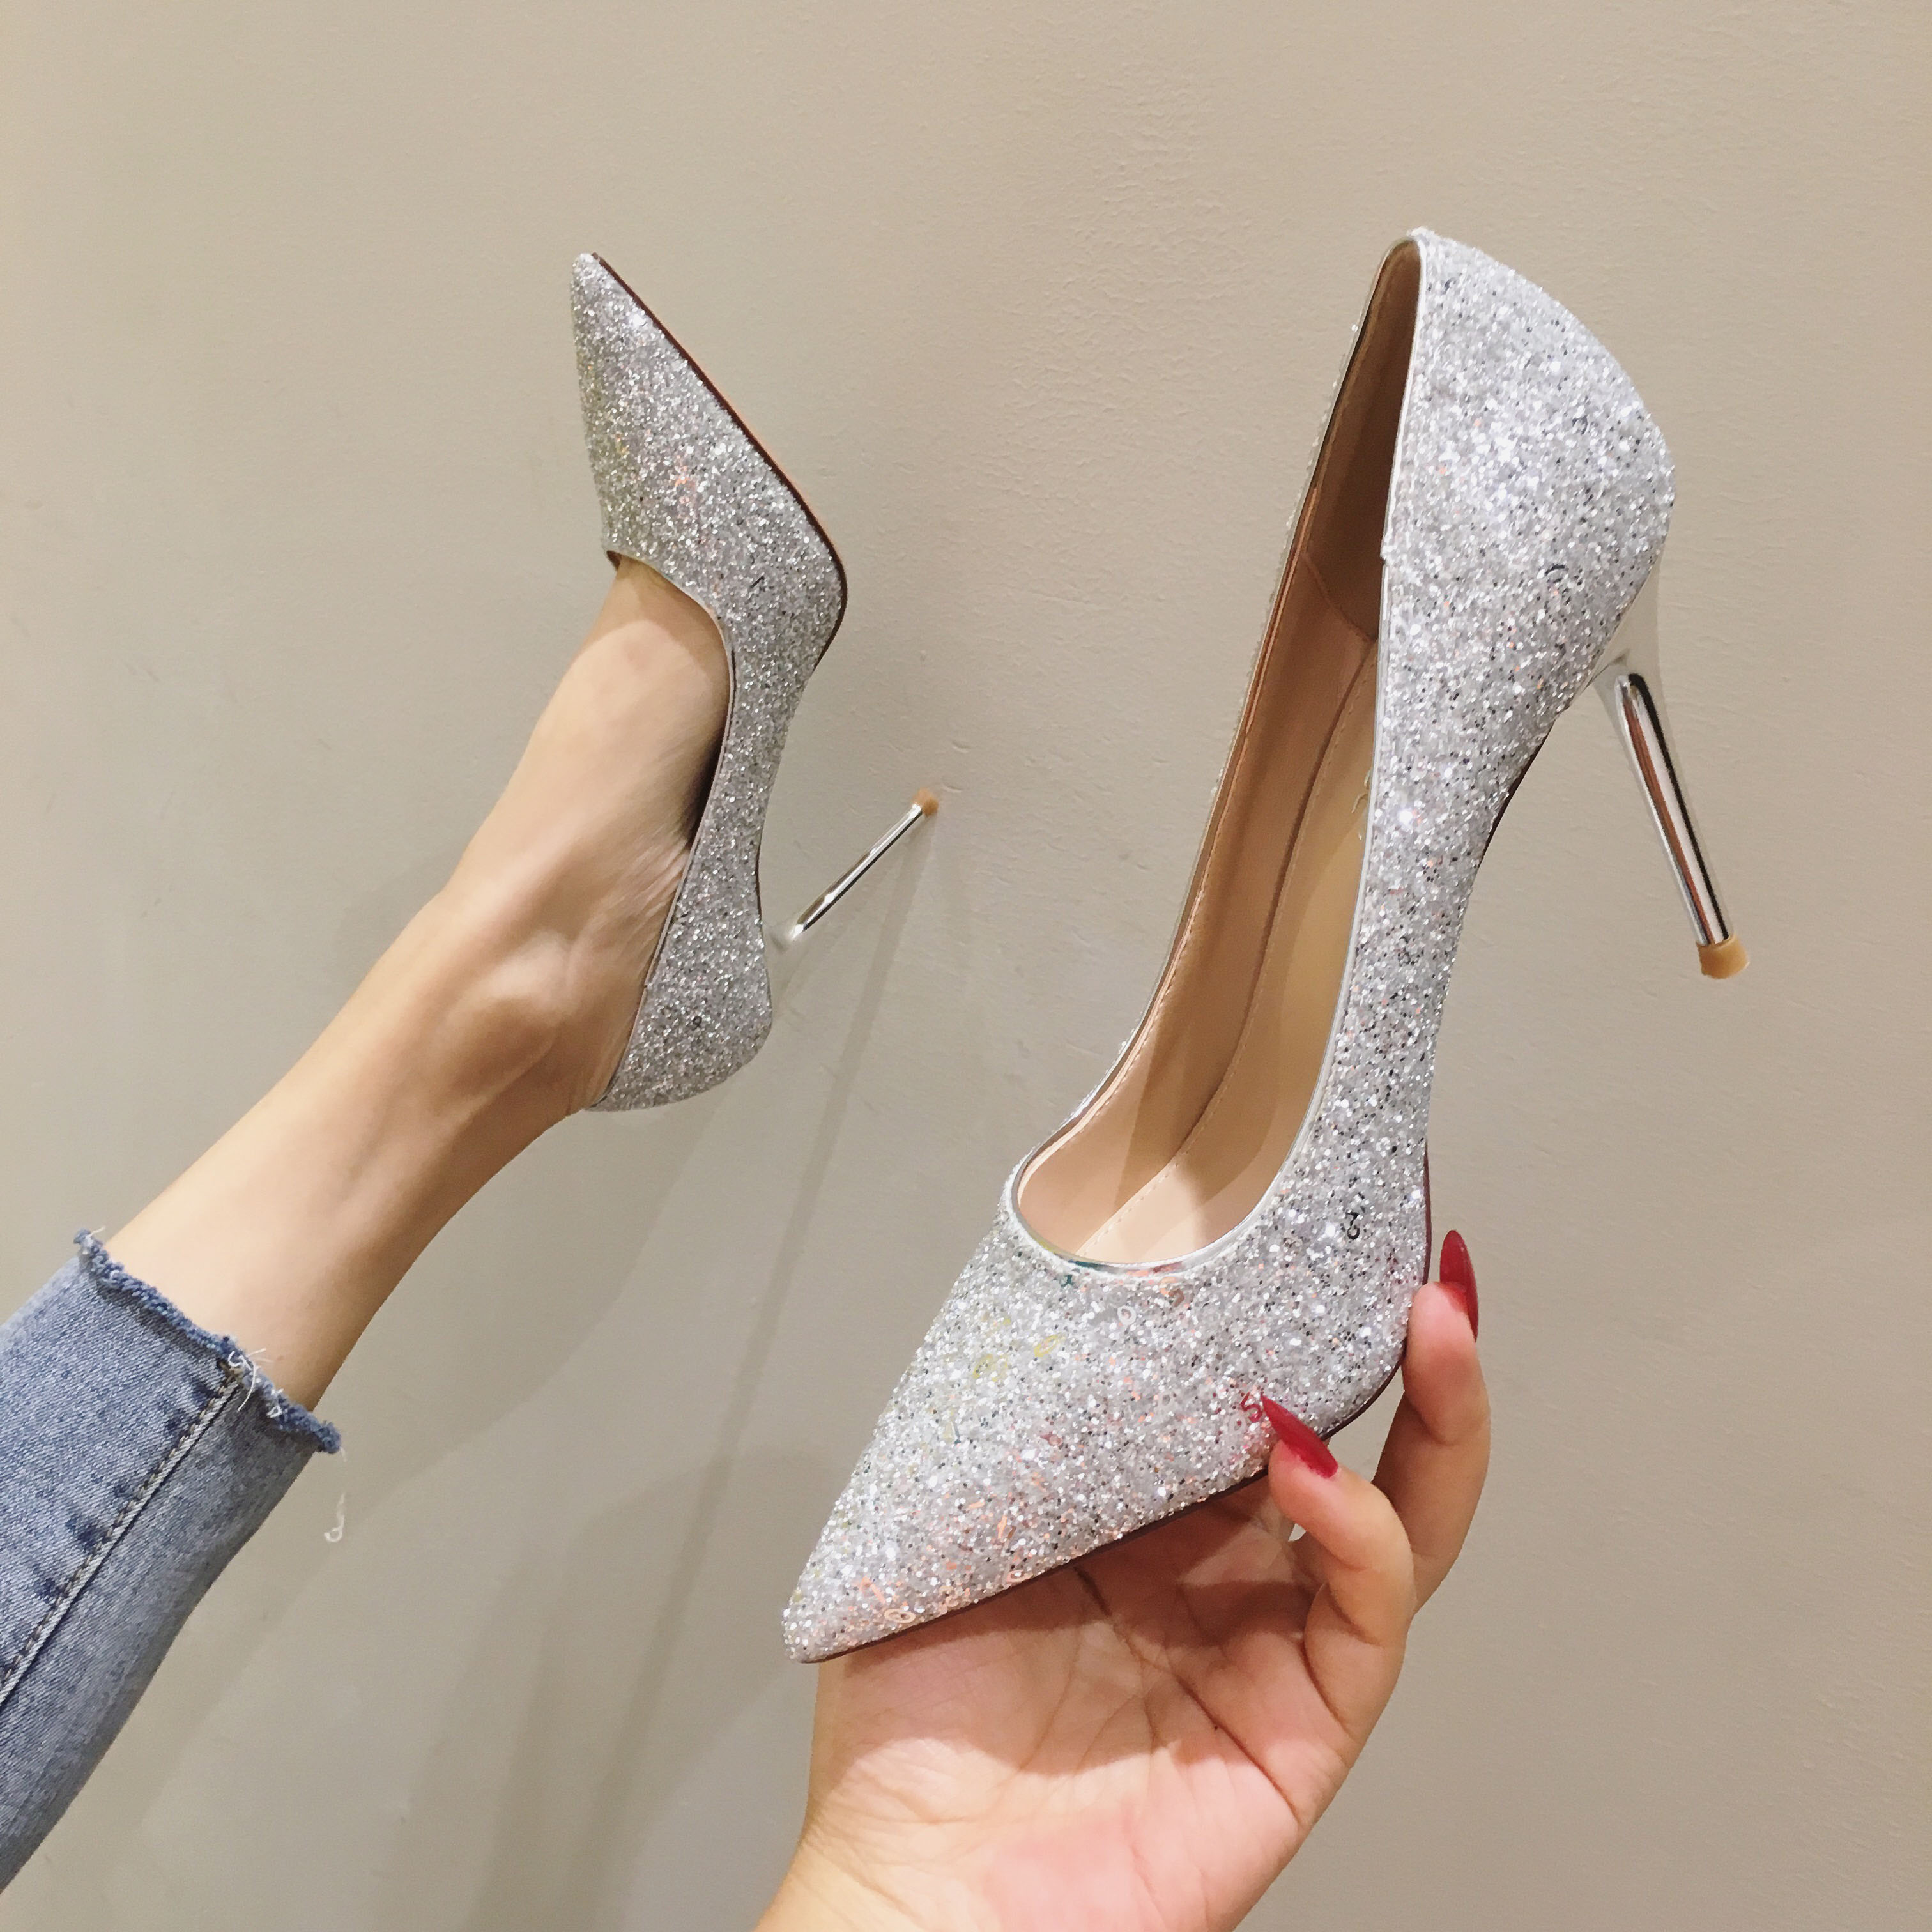 French small high heeled shoes women 2020 new Bridesmaid Silver Crystal Sequin slim heel shoes wedding shoes bridal shoes